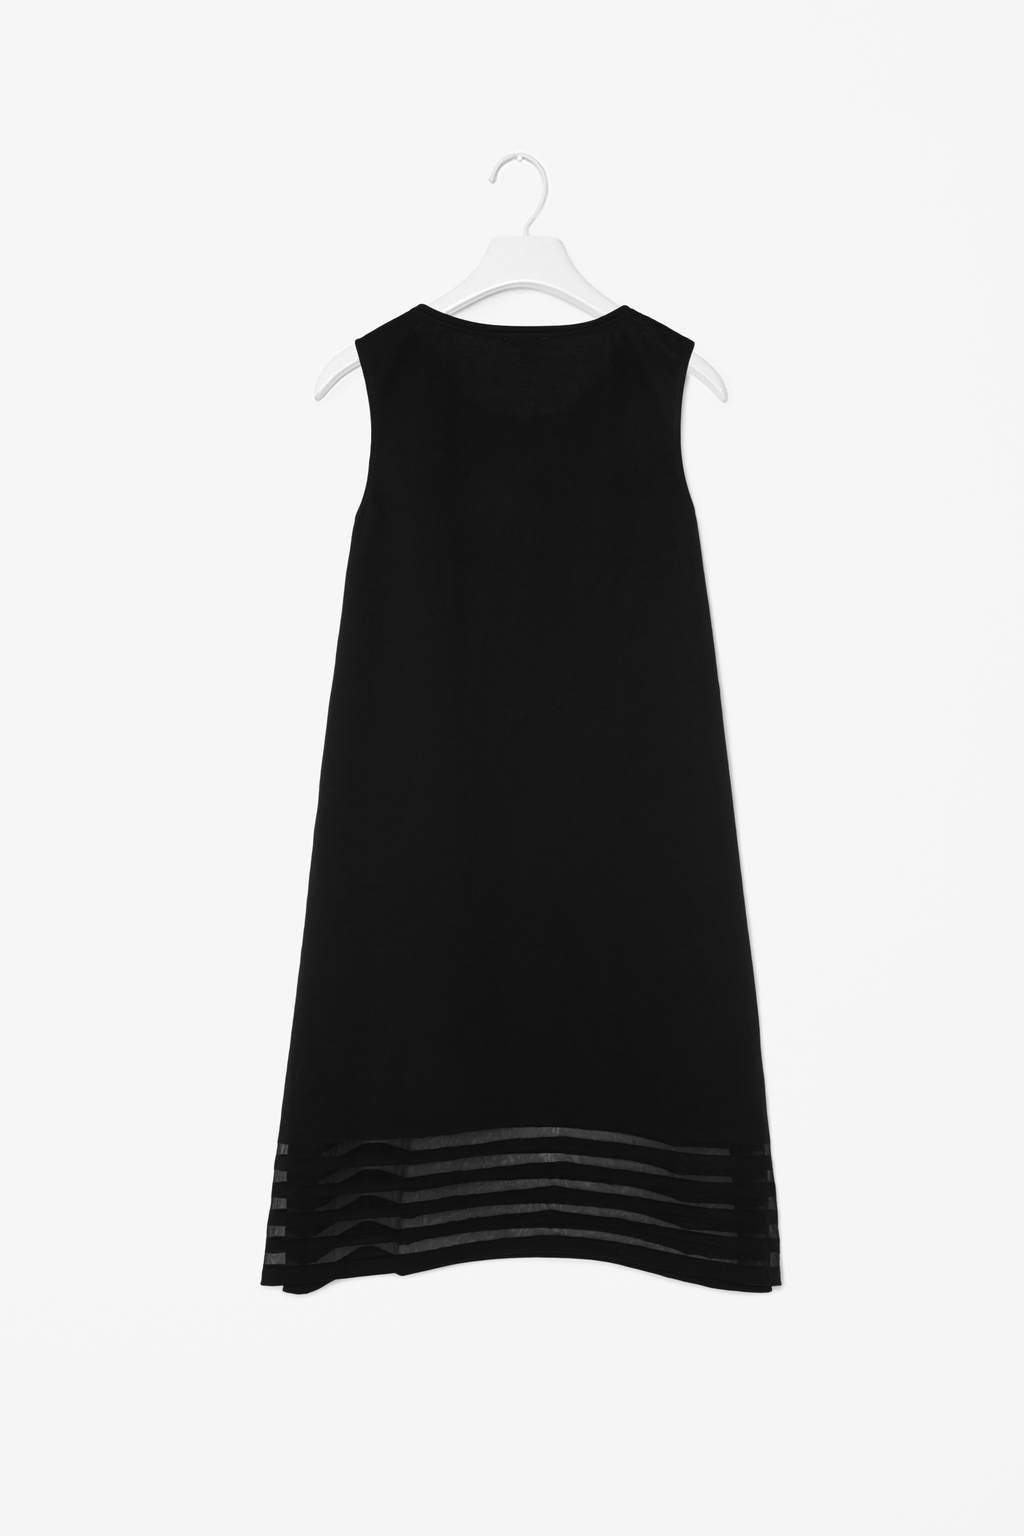 Dress With Sheer Stripes - style: trapeze; length: mid thigh; neckline: round neck; pattern: plain; sleeve style: sleeveless; predominant colour: black; occasions: evening, occasion, creative work; fit: soft a-line; sleeve length: sleeveless; pattern type: fabric; texture group: other - light to midweight; season: s/s 2014